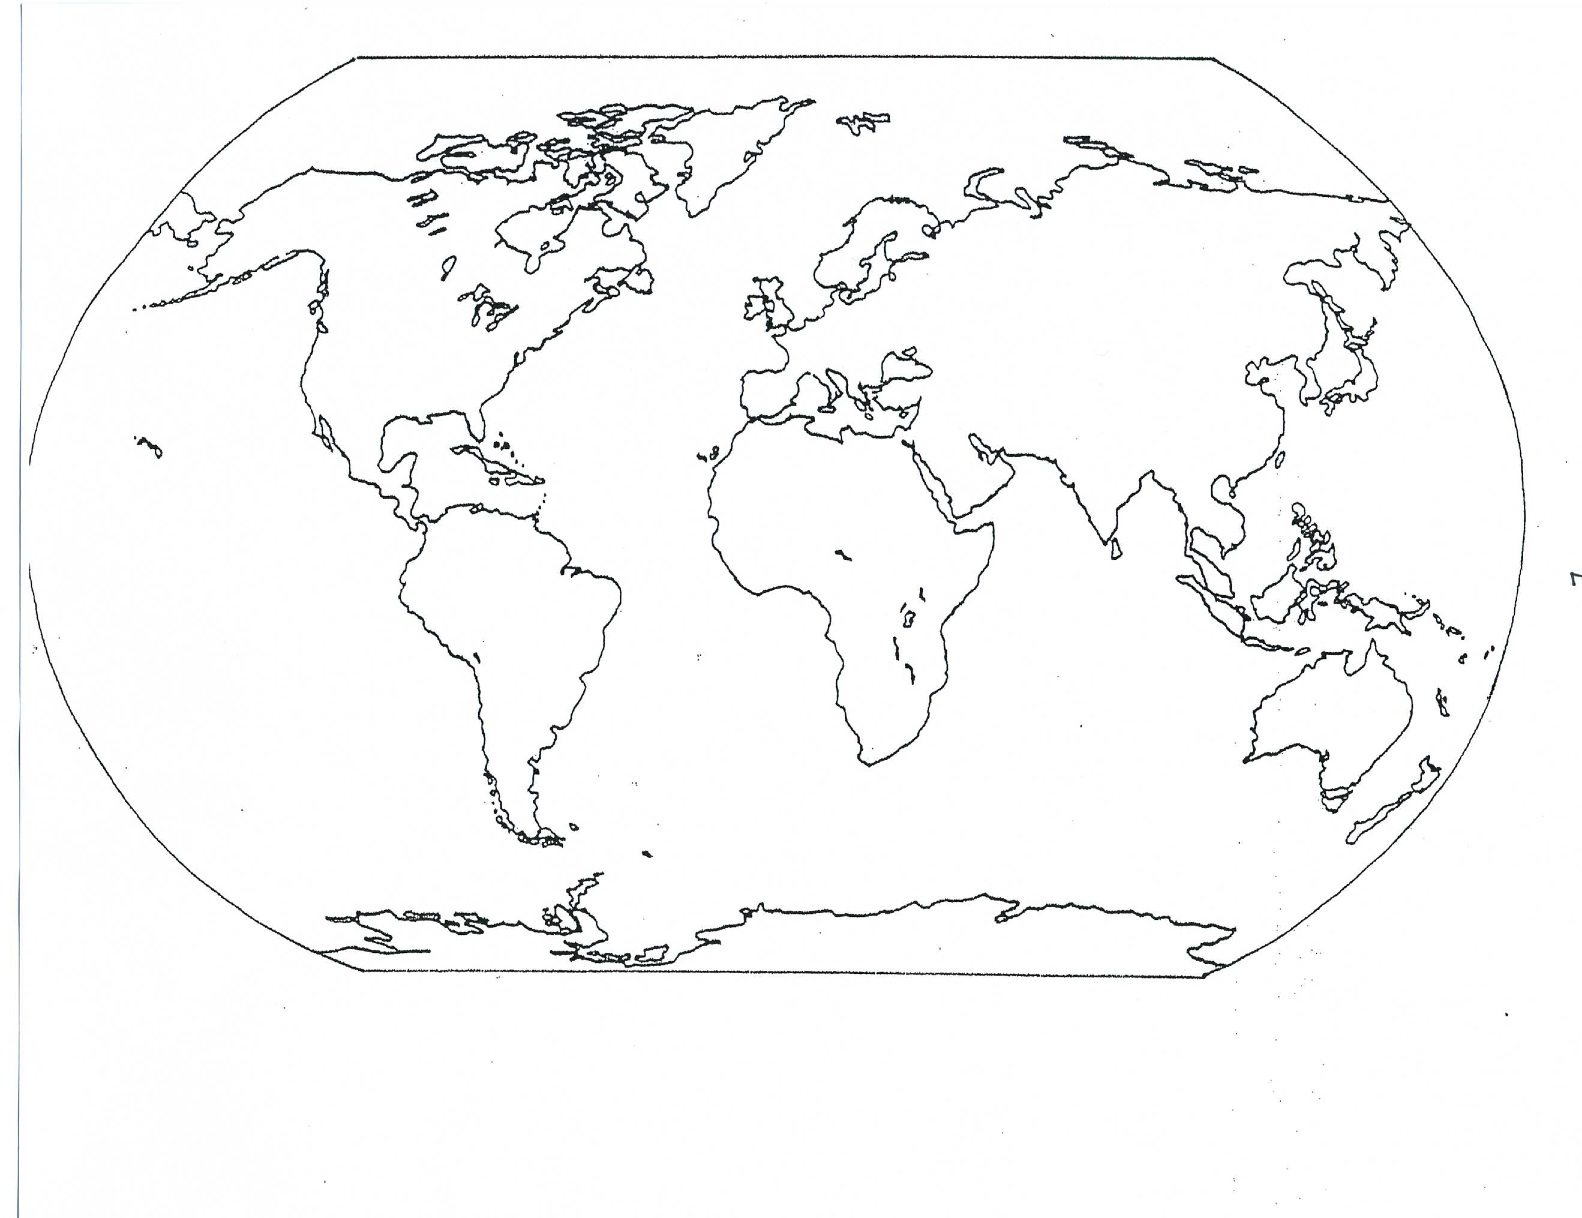 Geography clipart continent Maps and Guerrieros Map Blank